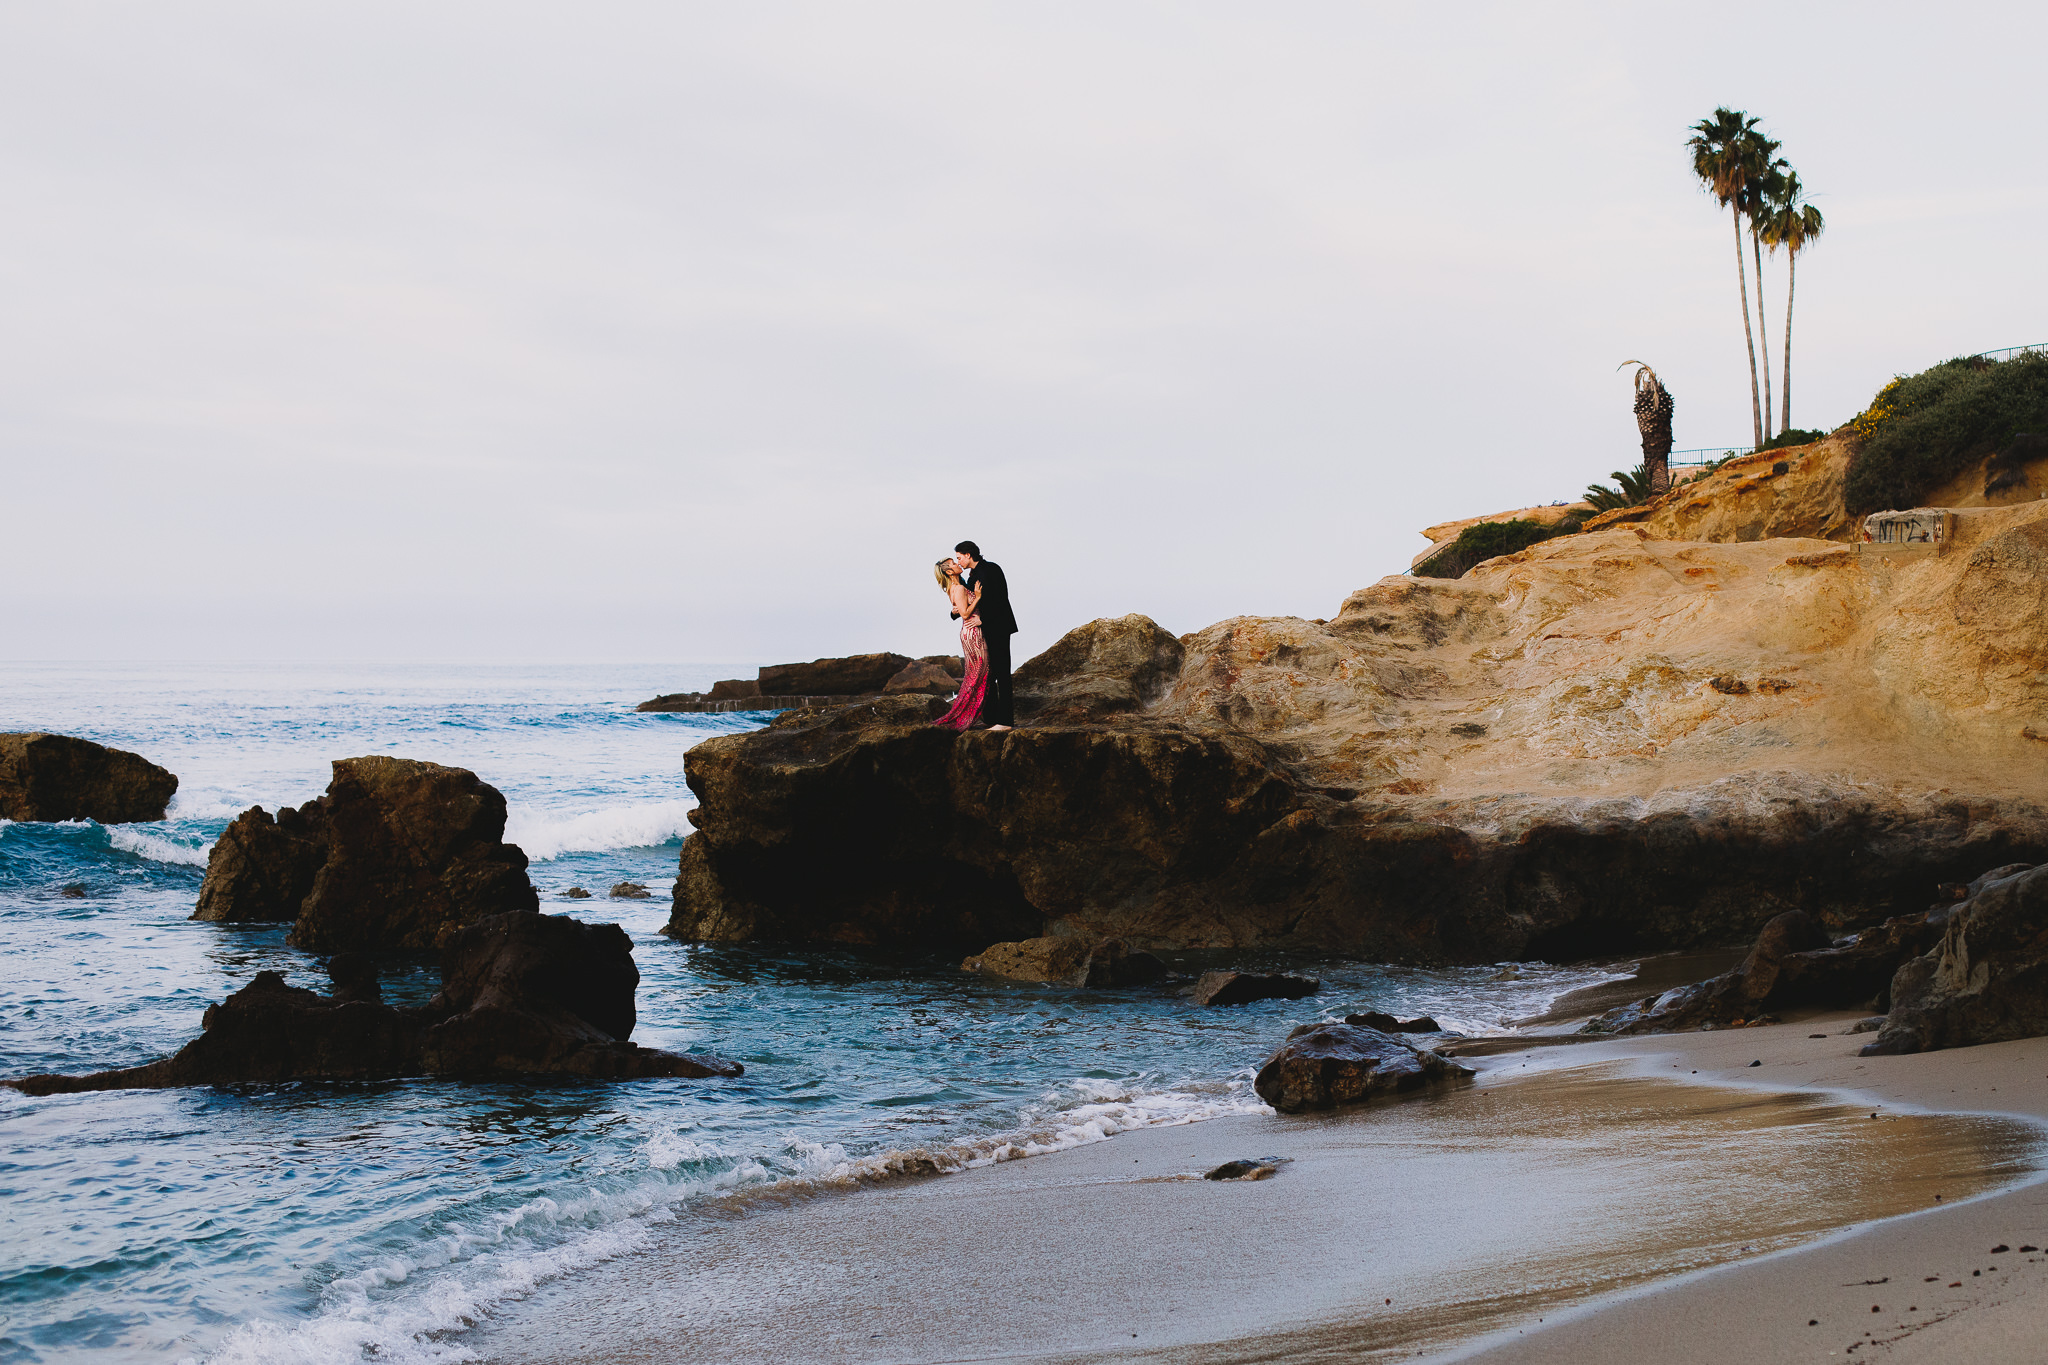 Archer Inspired Photography Amy and Kyle Wedding Engagement Session Long Beach Los Angeles California SoCal Best Top Rated Affordable Lifestyle Documentary Natural Light Fun Offbeat Unique Photographer-22.jpg